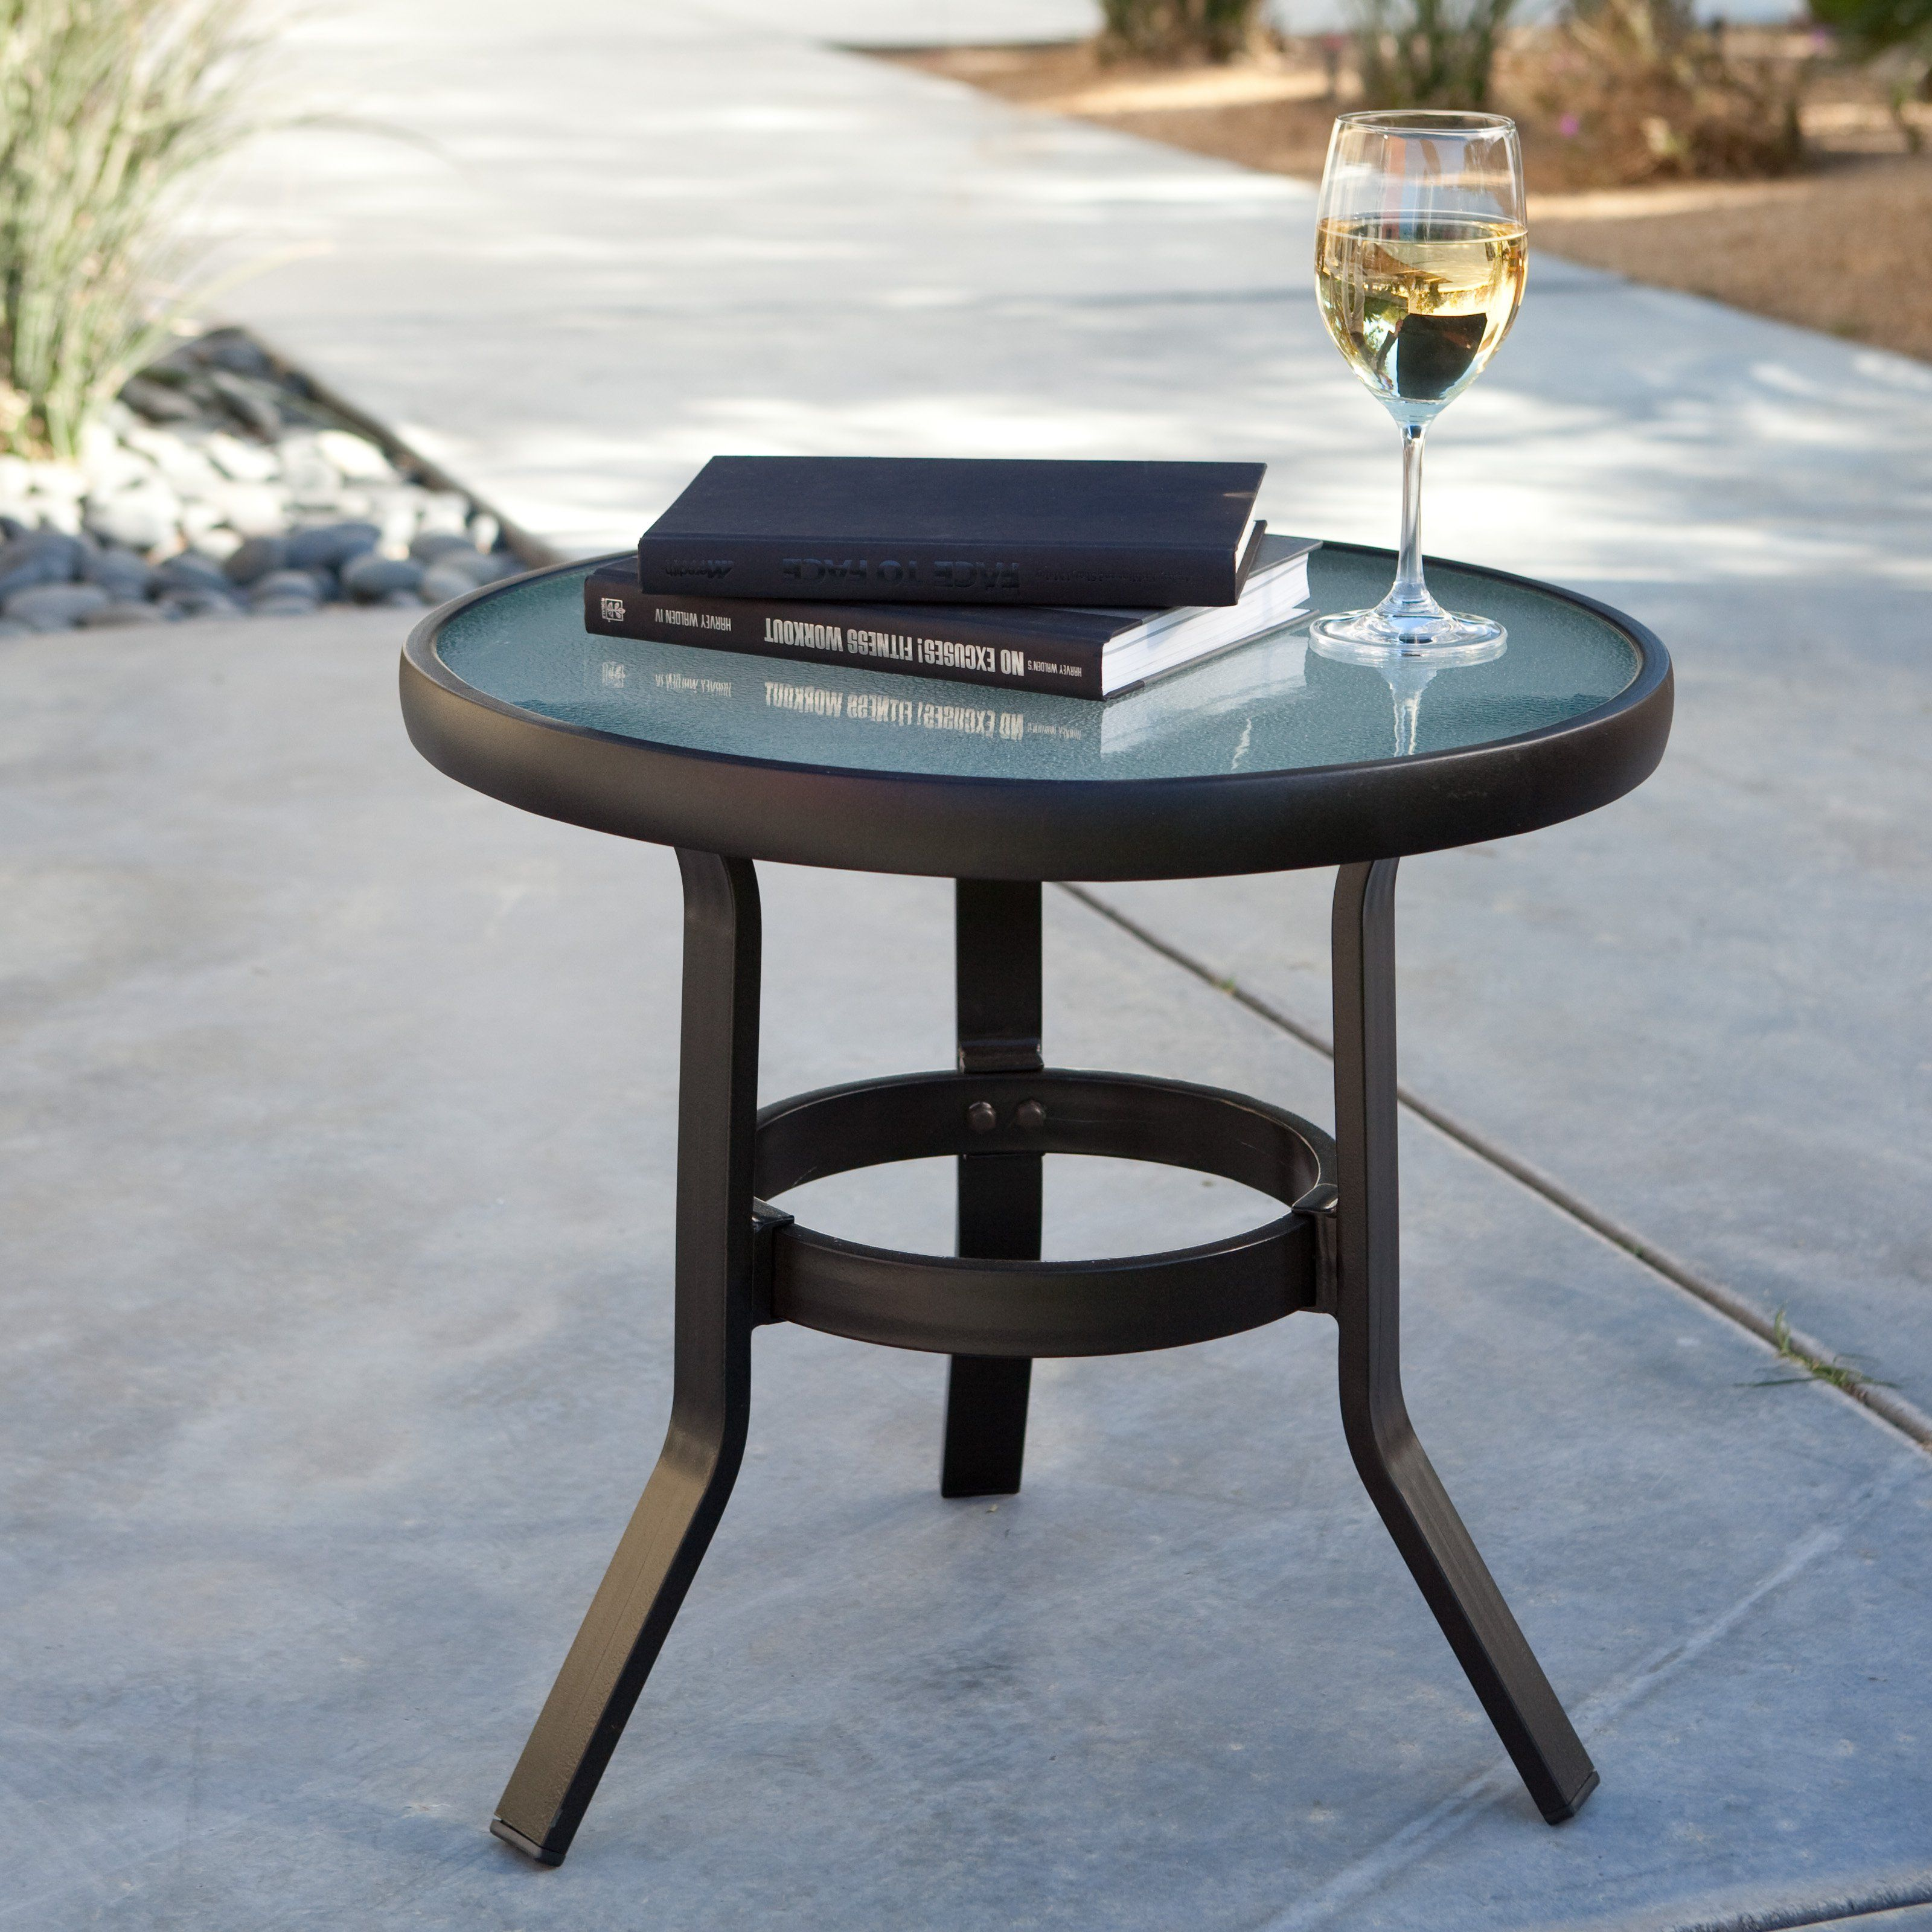 Coral Coast 20 in Patio Side Table Perfect for keeping snacks